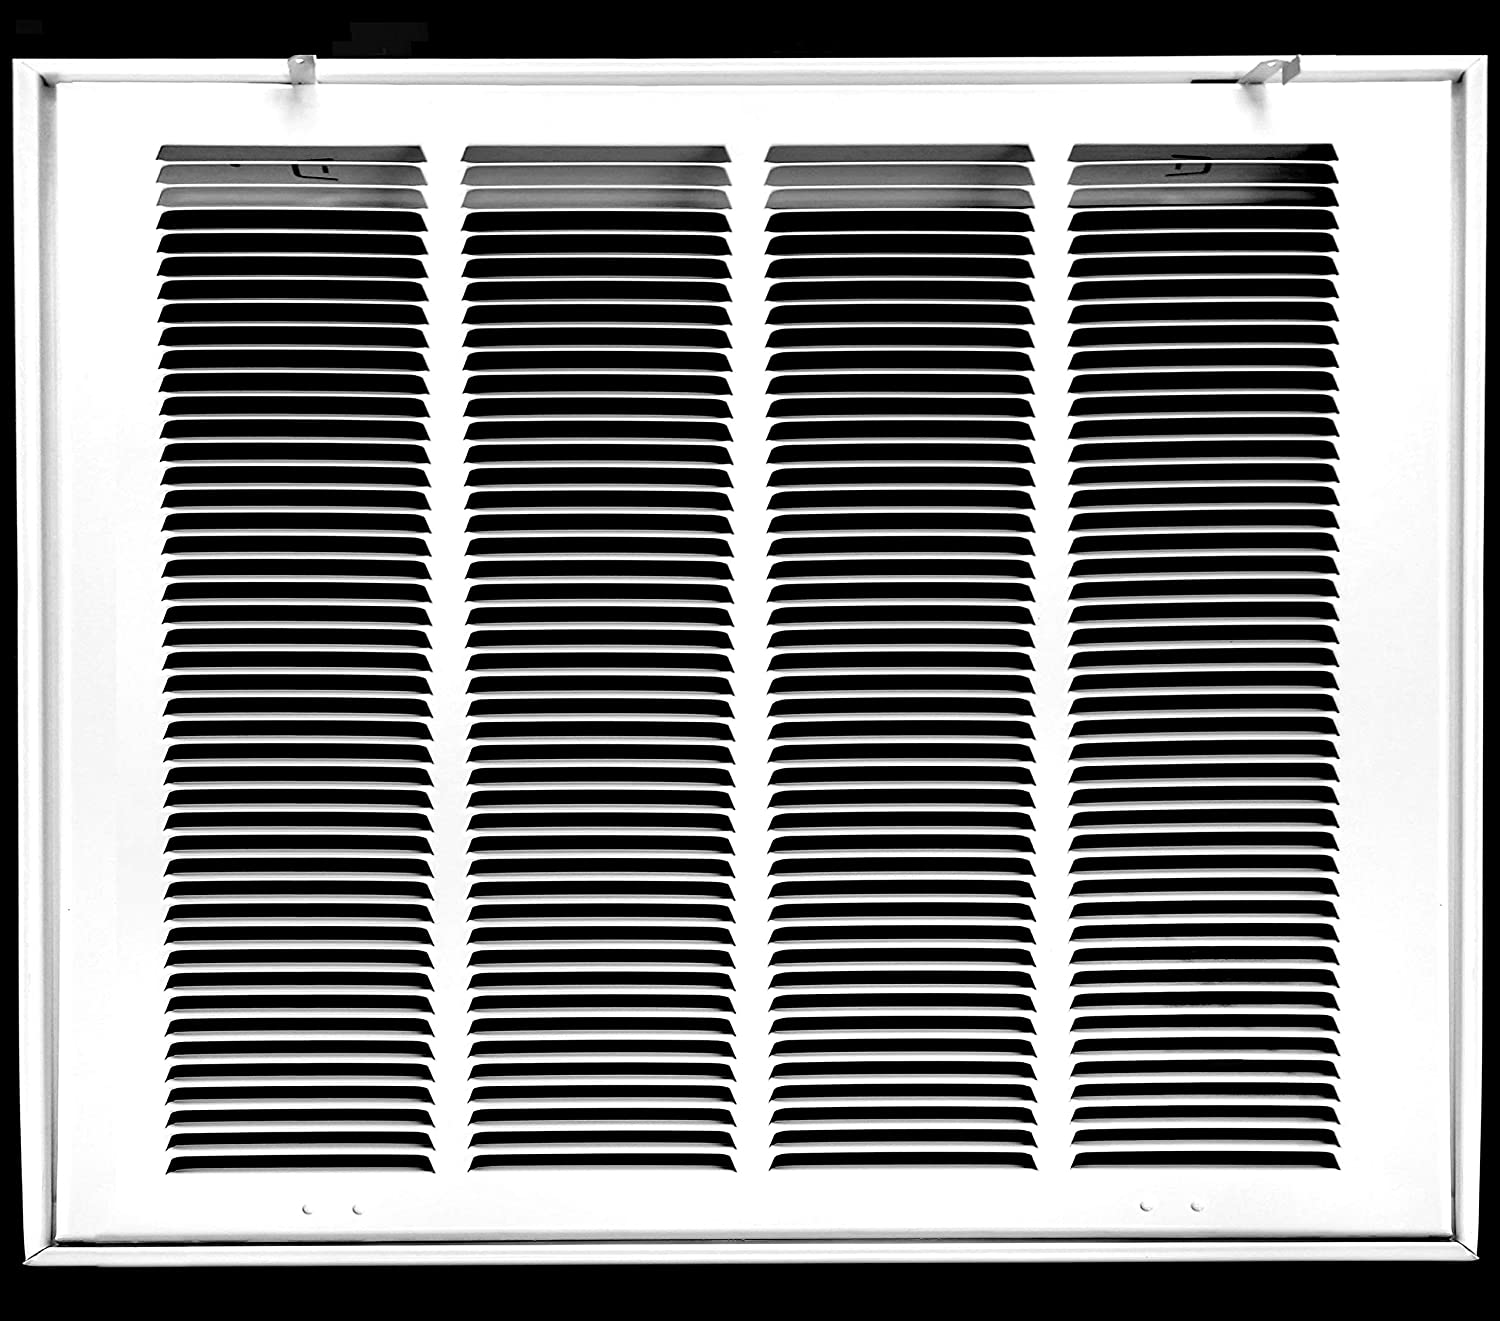 "22"" X 22"" Steel Return Air Filter Grille for 1"" Filter - Fixed Hinged - Ceiling Recommended - HVAC Duct Cover - Flat"" Stamped Face - White [Outer Dimensions: 24.5 X 23.75]"